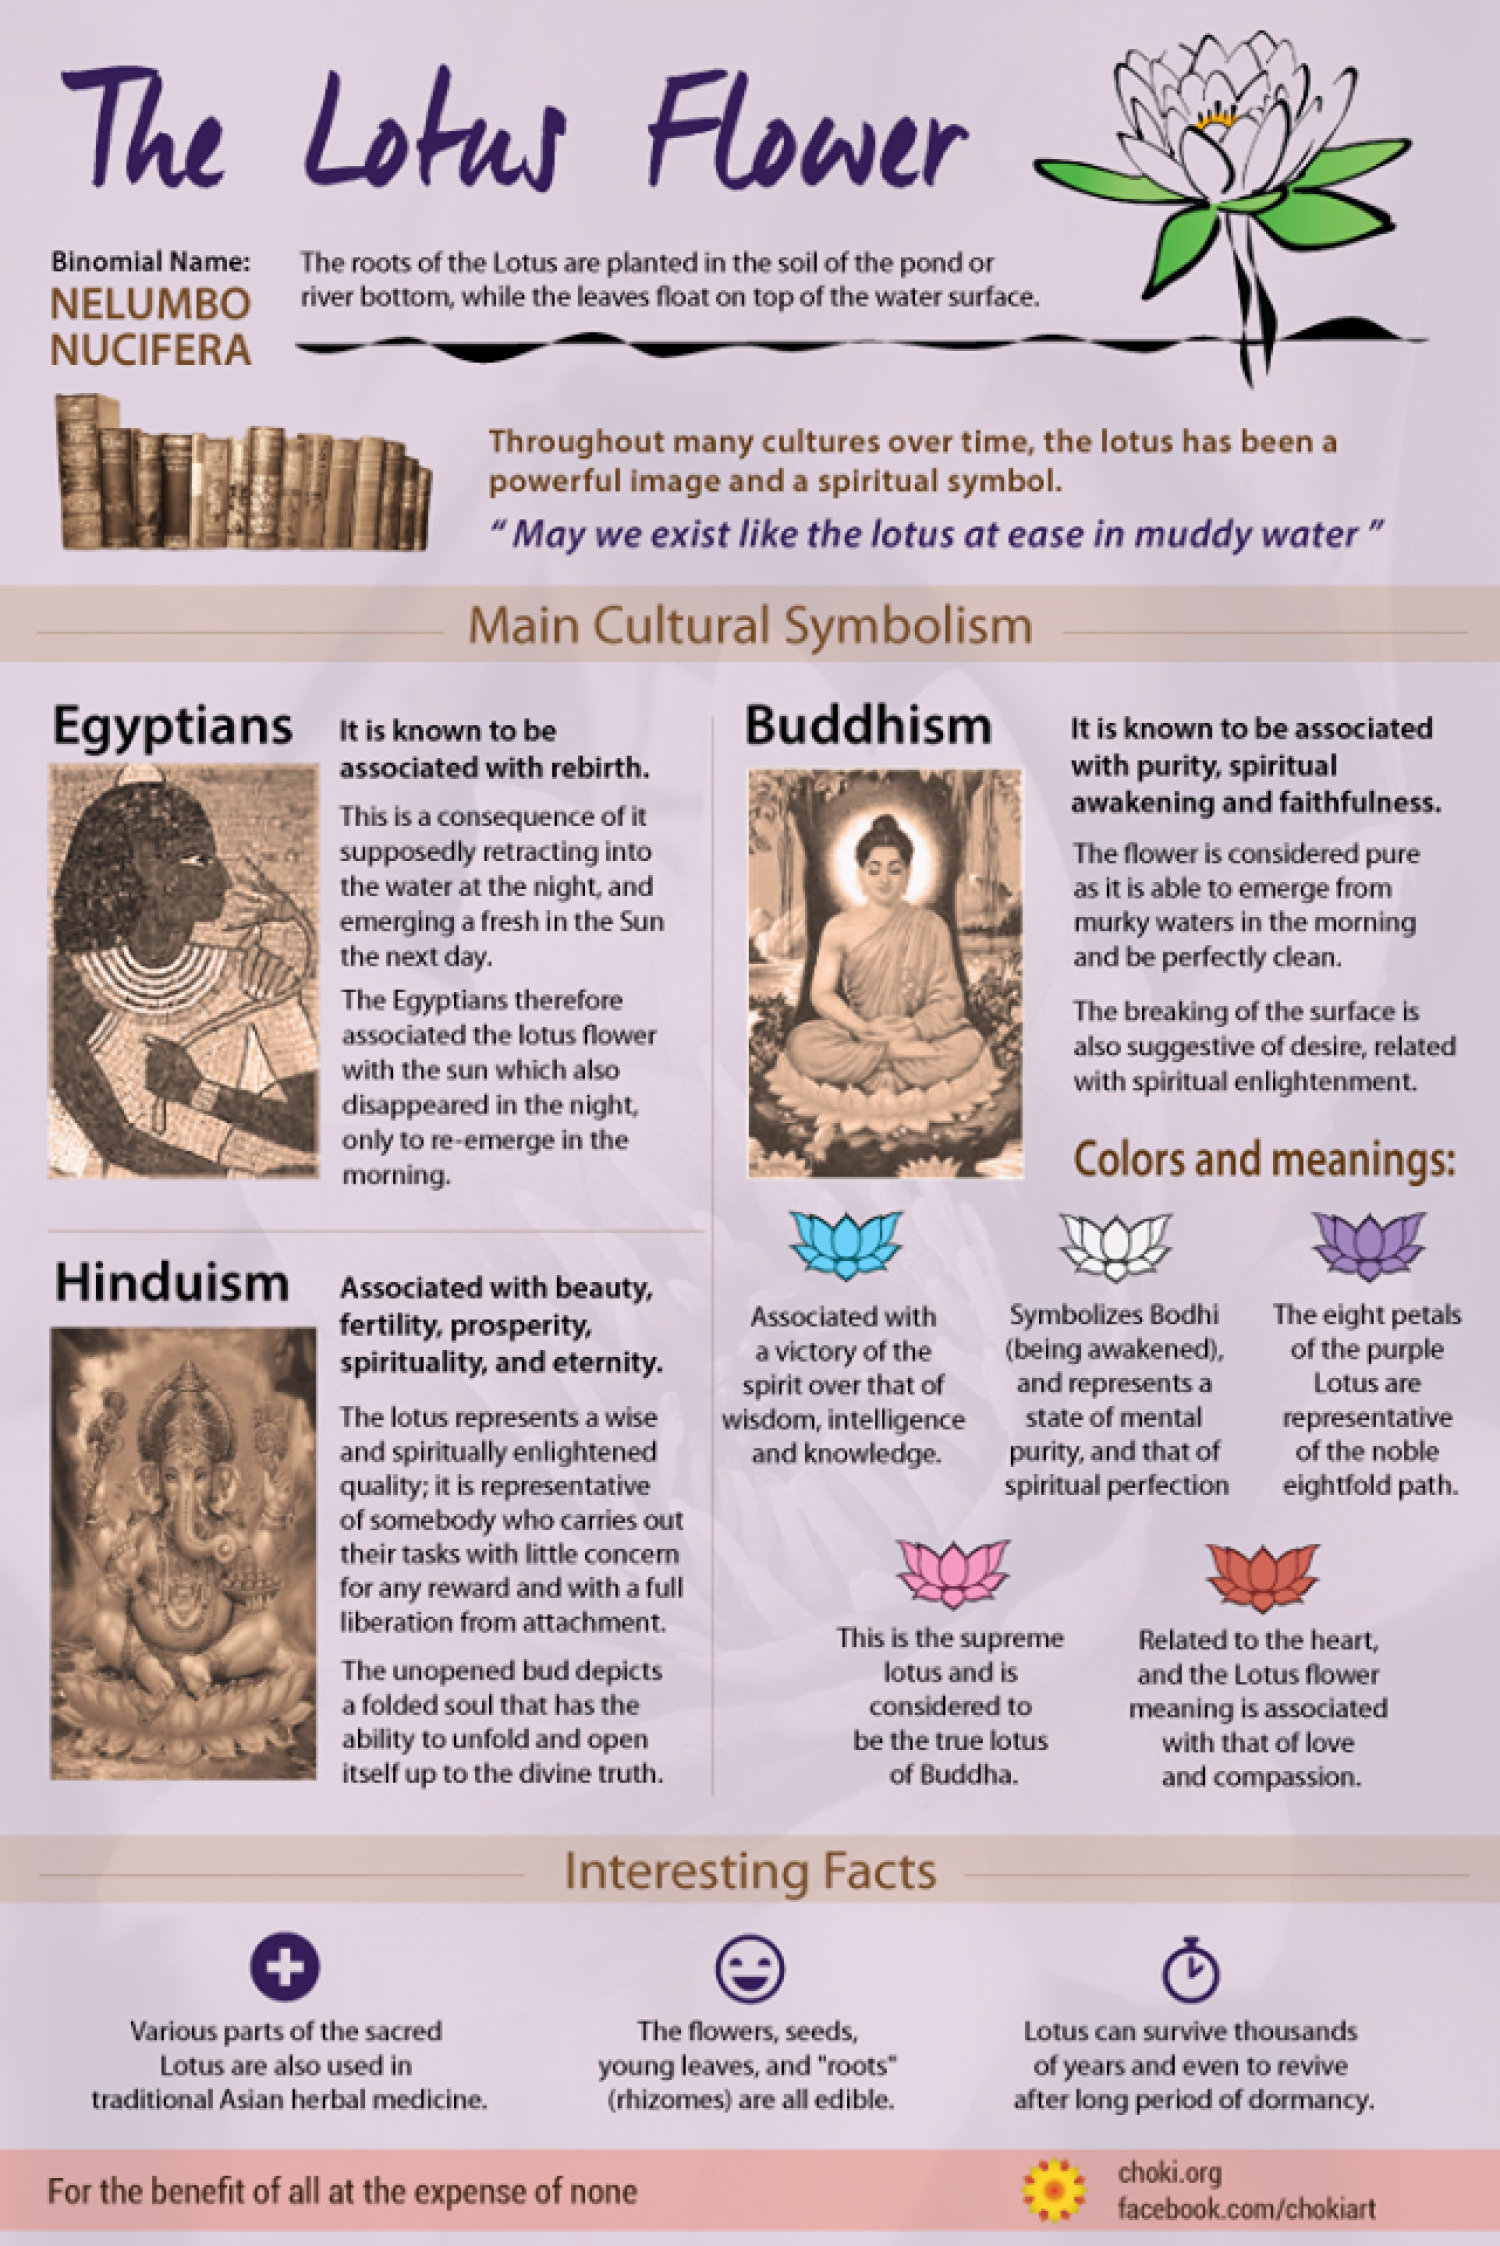 Interesting Facts About The Lotus Flower Visual